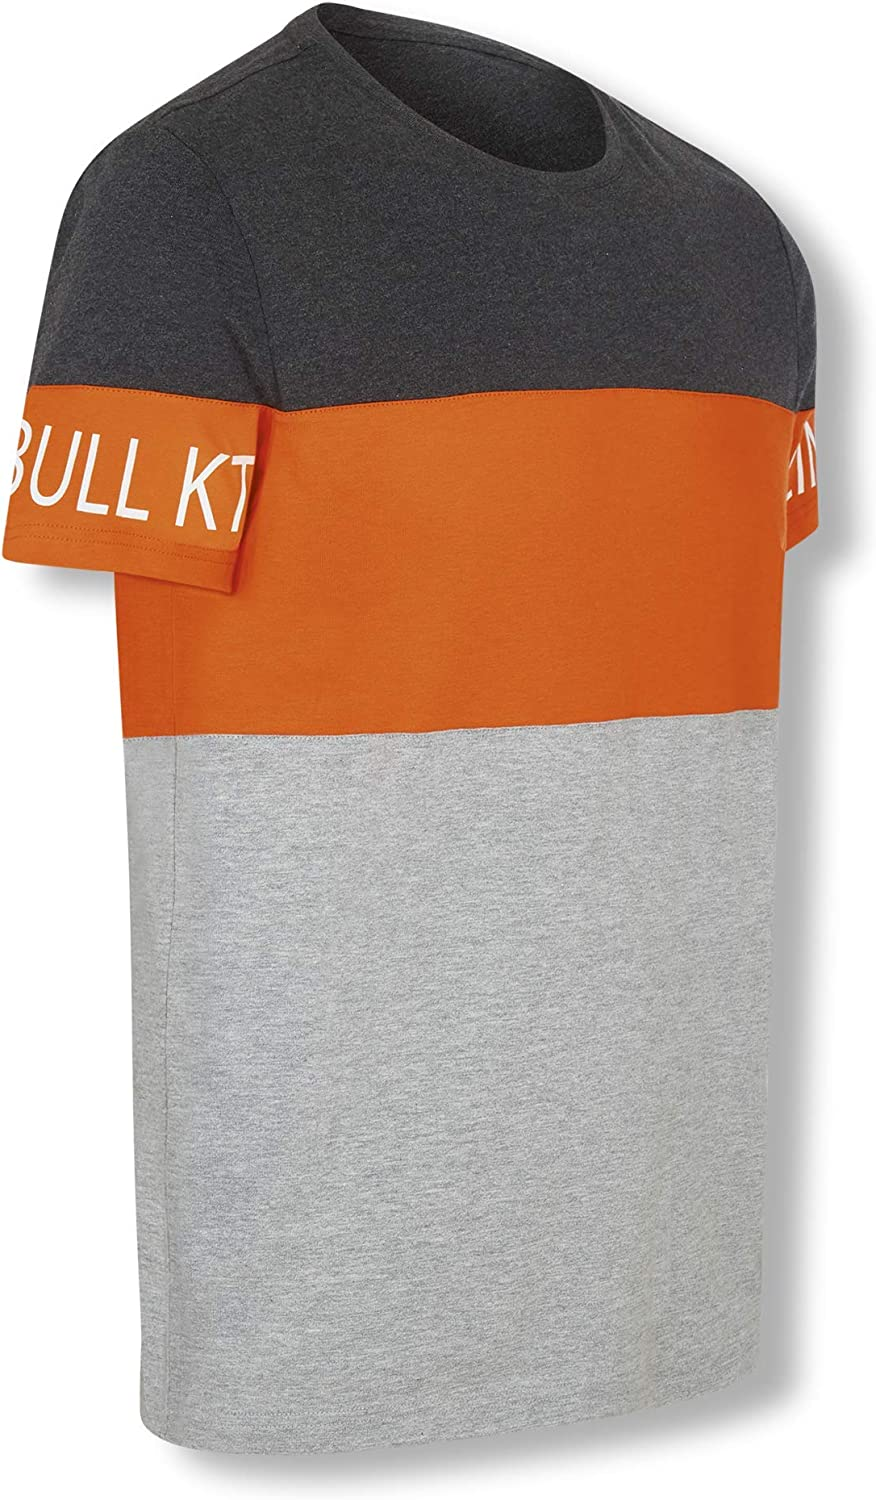 Red Bull KTM Letra Block T-Camisa, Gris Hombres X-Large Camisa ...